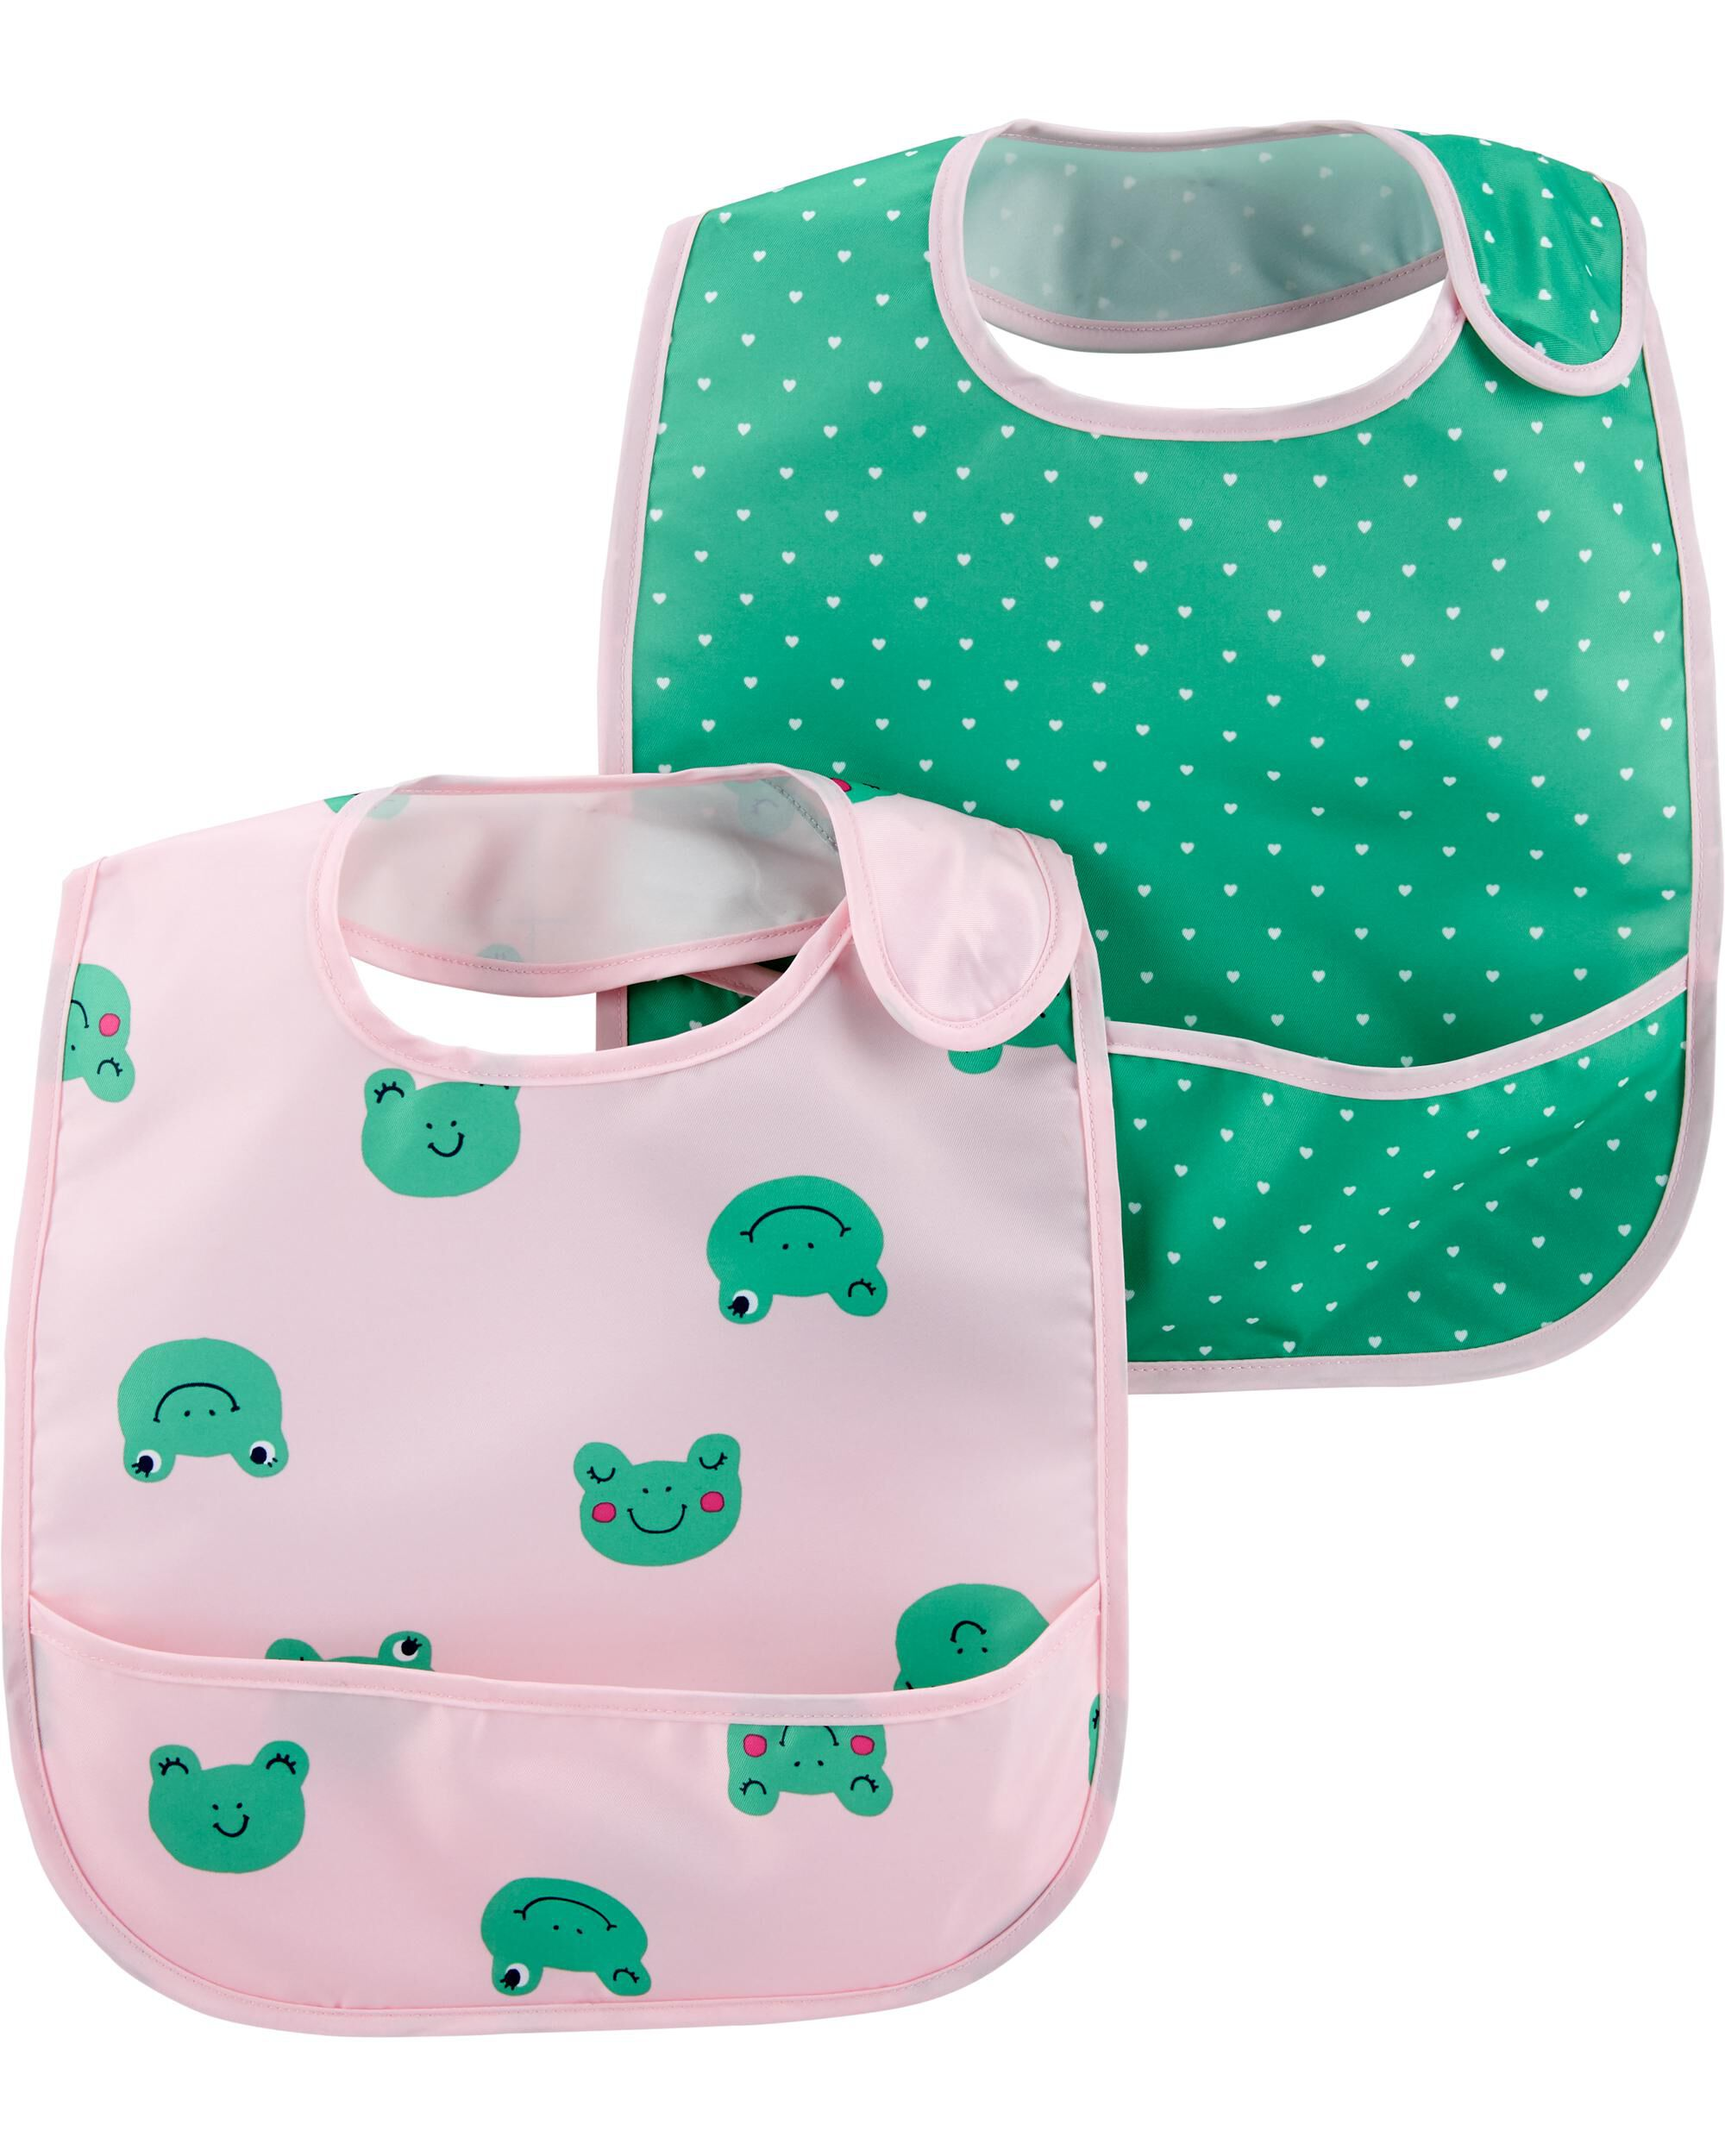 Oshkoshbgosh 2-Pack Hearts & Frogs Water Resistant Bibs